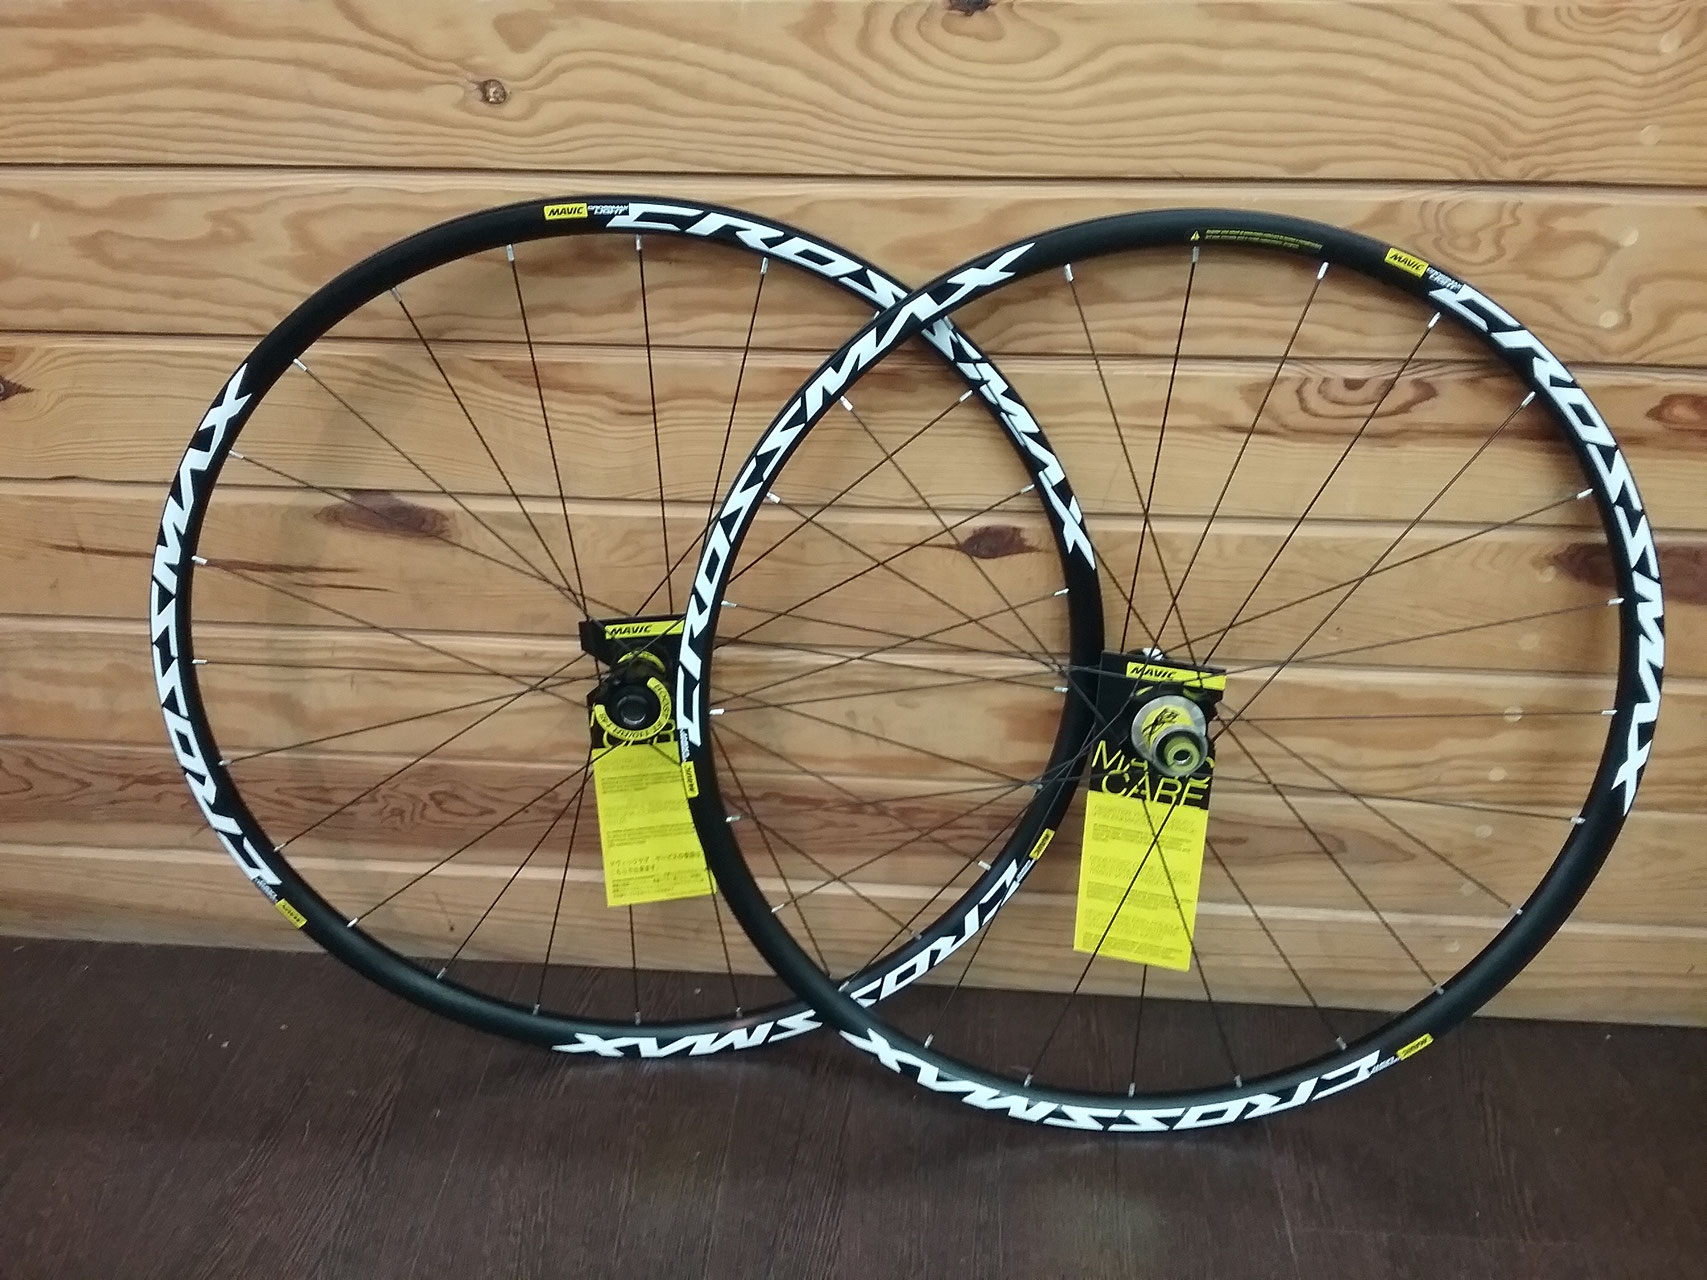 ROUES VTT - CYCL'ONE